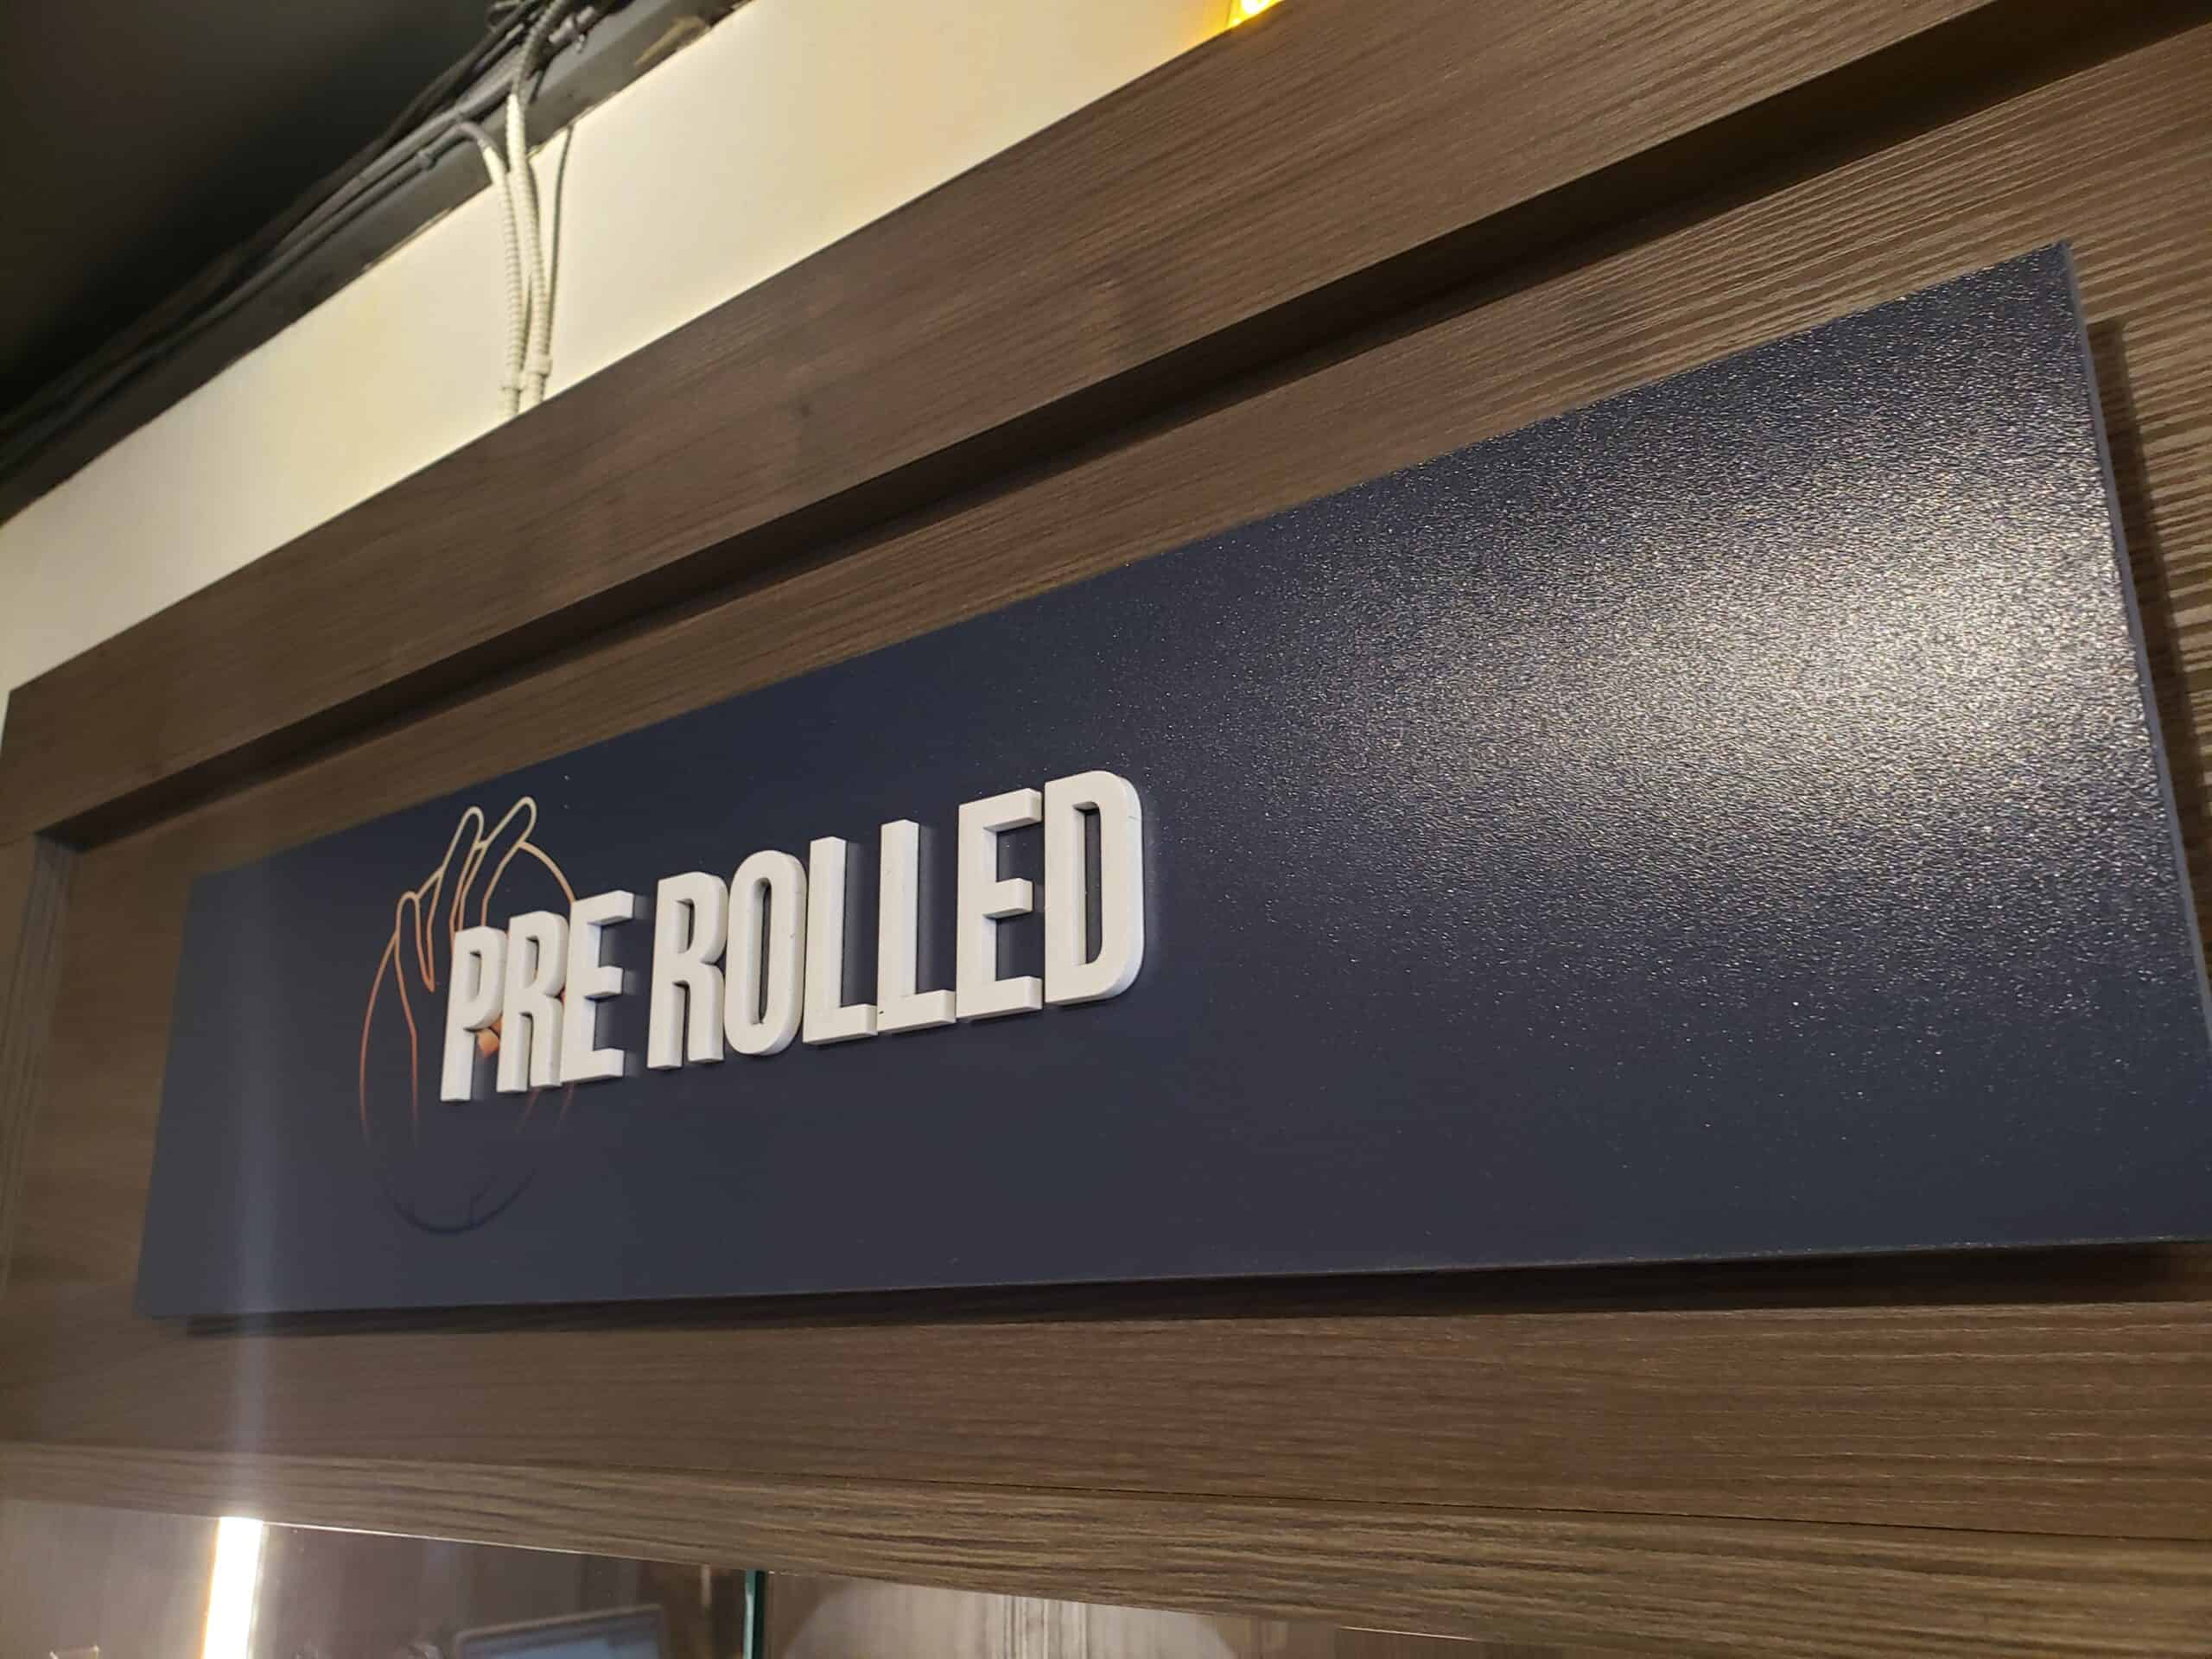 pre rolled sign with raised acrylic letters